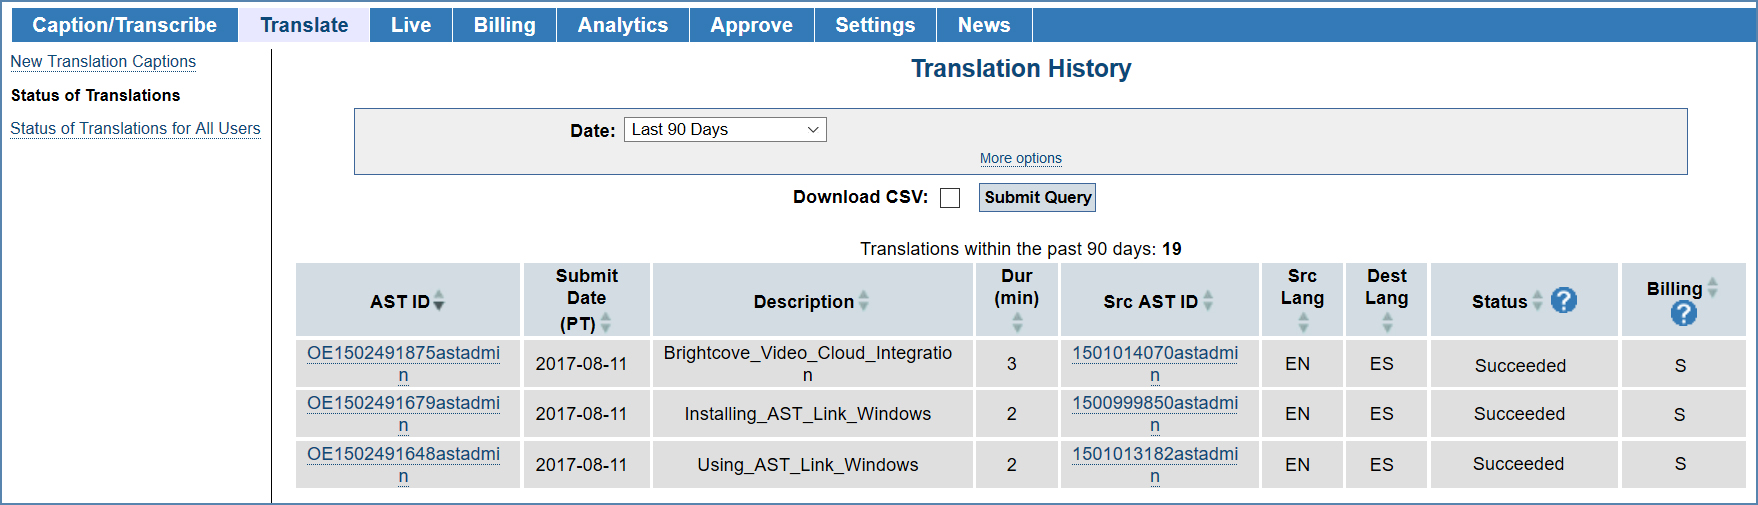 Image of the Status of Translations page